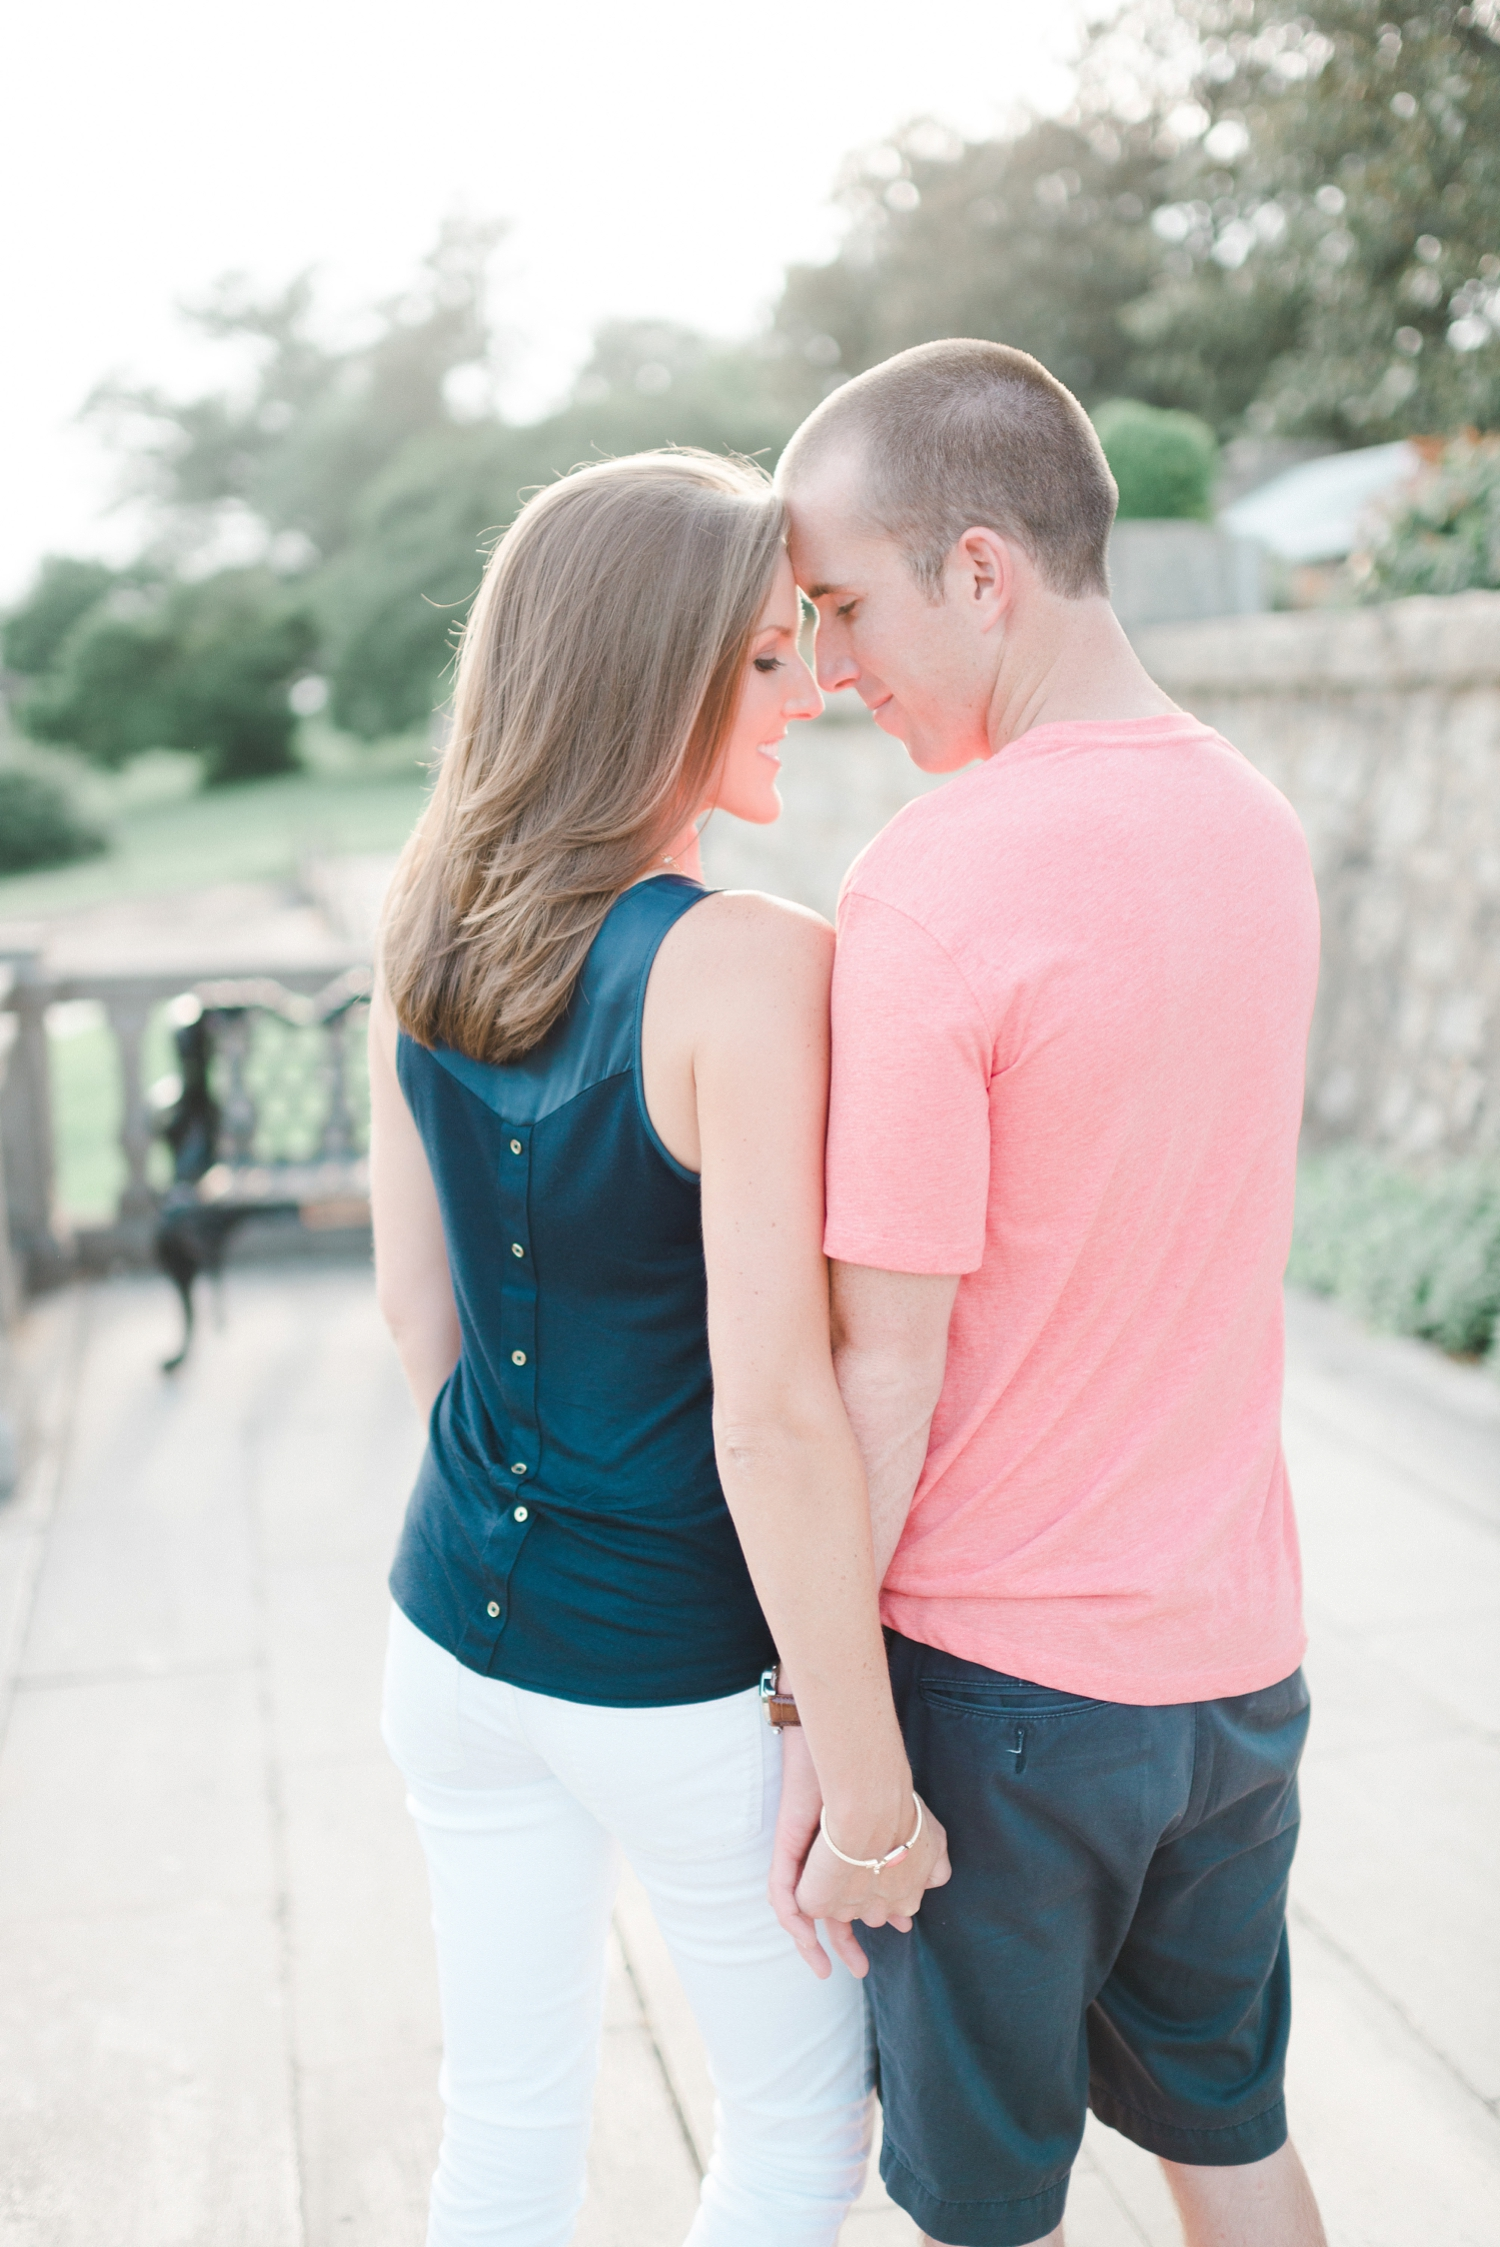 Maymon_Park_richmond_engagement_photography_0021.jpg